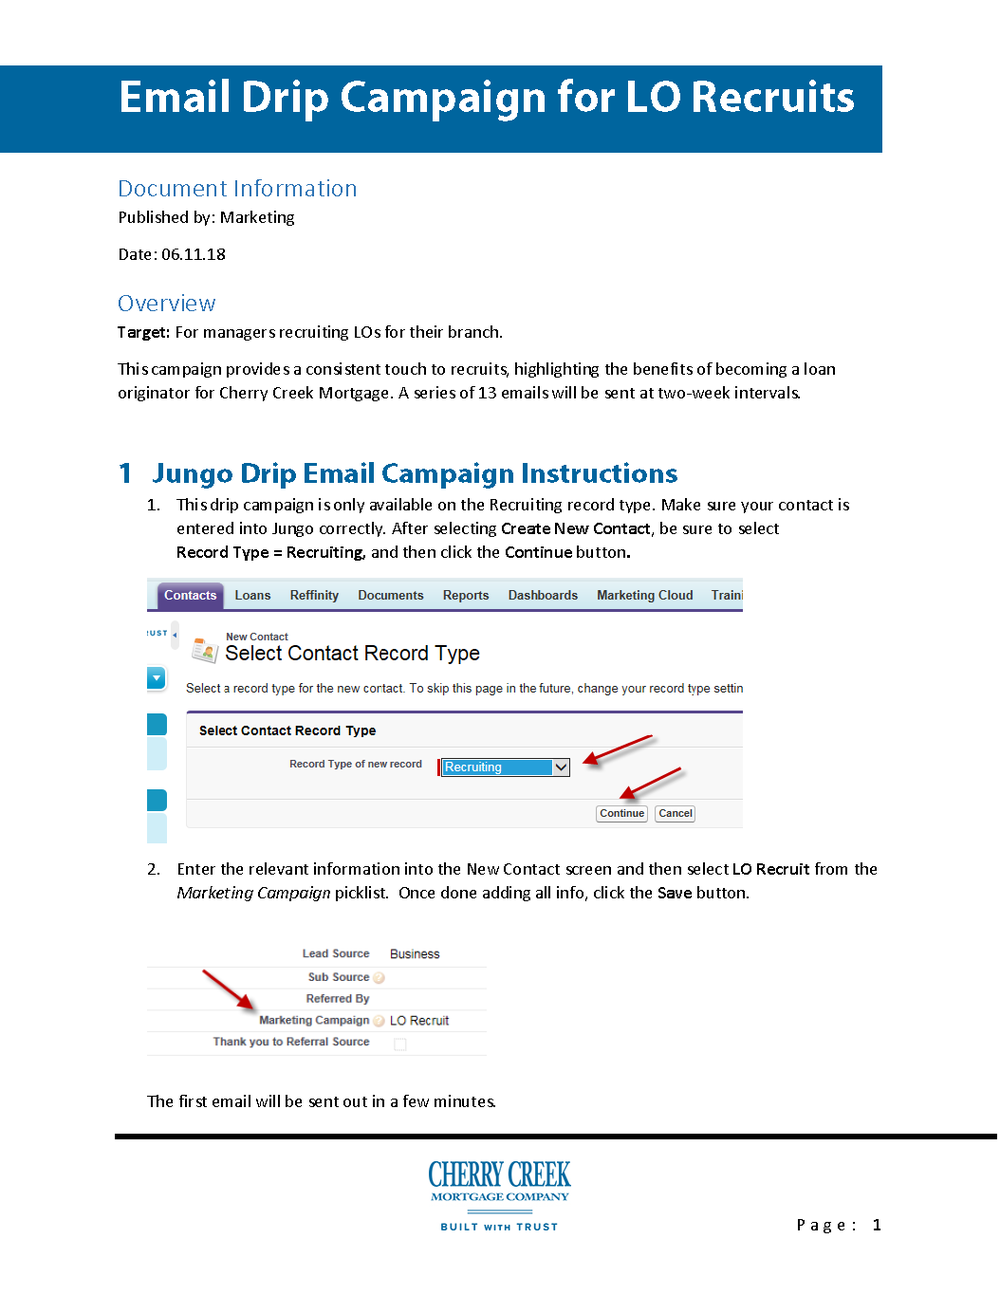 Jungo_Email_Drip_Campaigns-LO_Recruit_Page_01.png